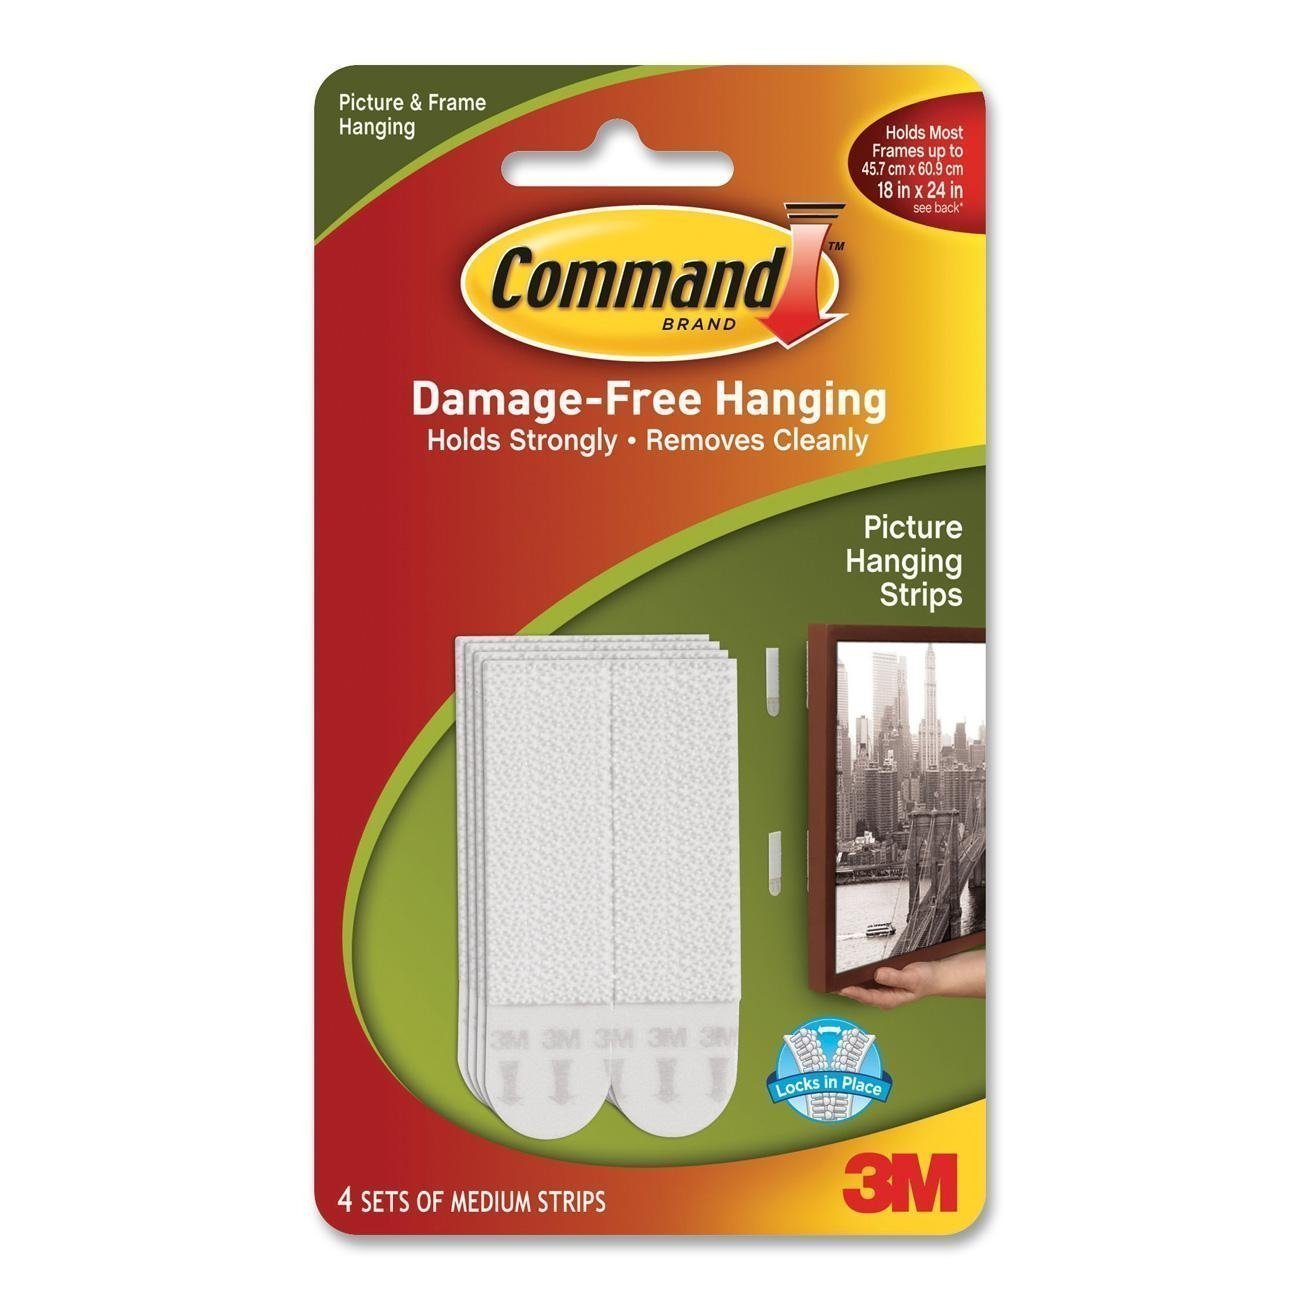 2 X Command Medium Picture Hanging Strips, 17201 4pk (1 Pack of 4 Sets) 3M/COMMERCIAL TAPE DIV.